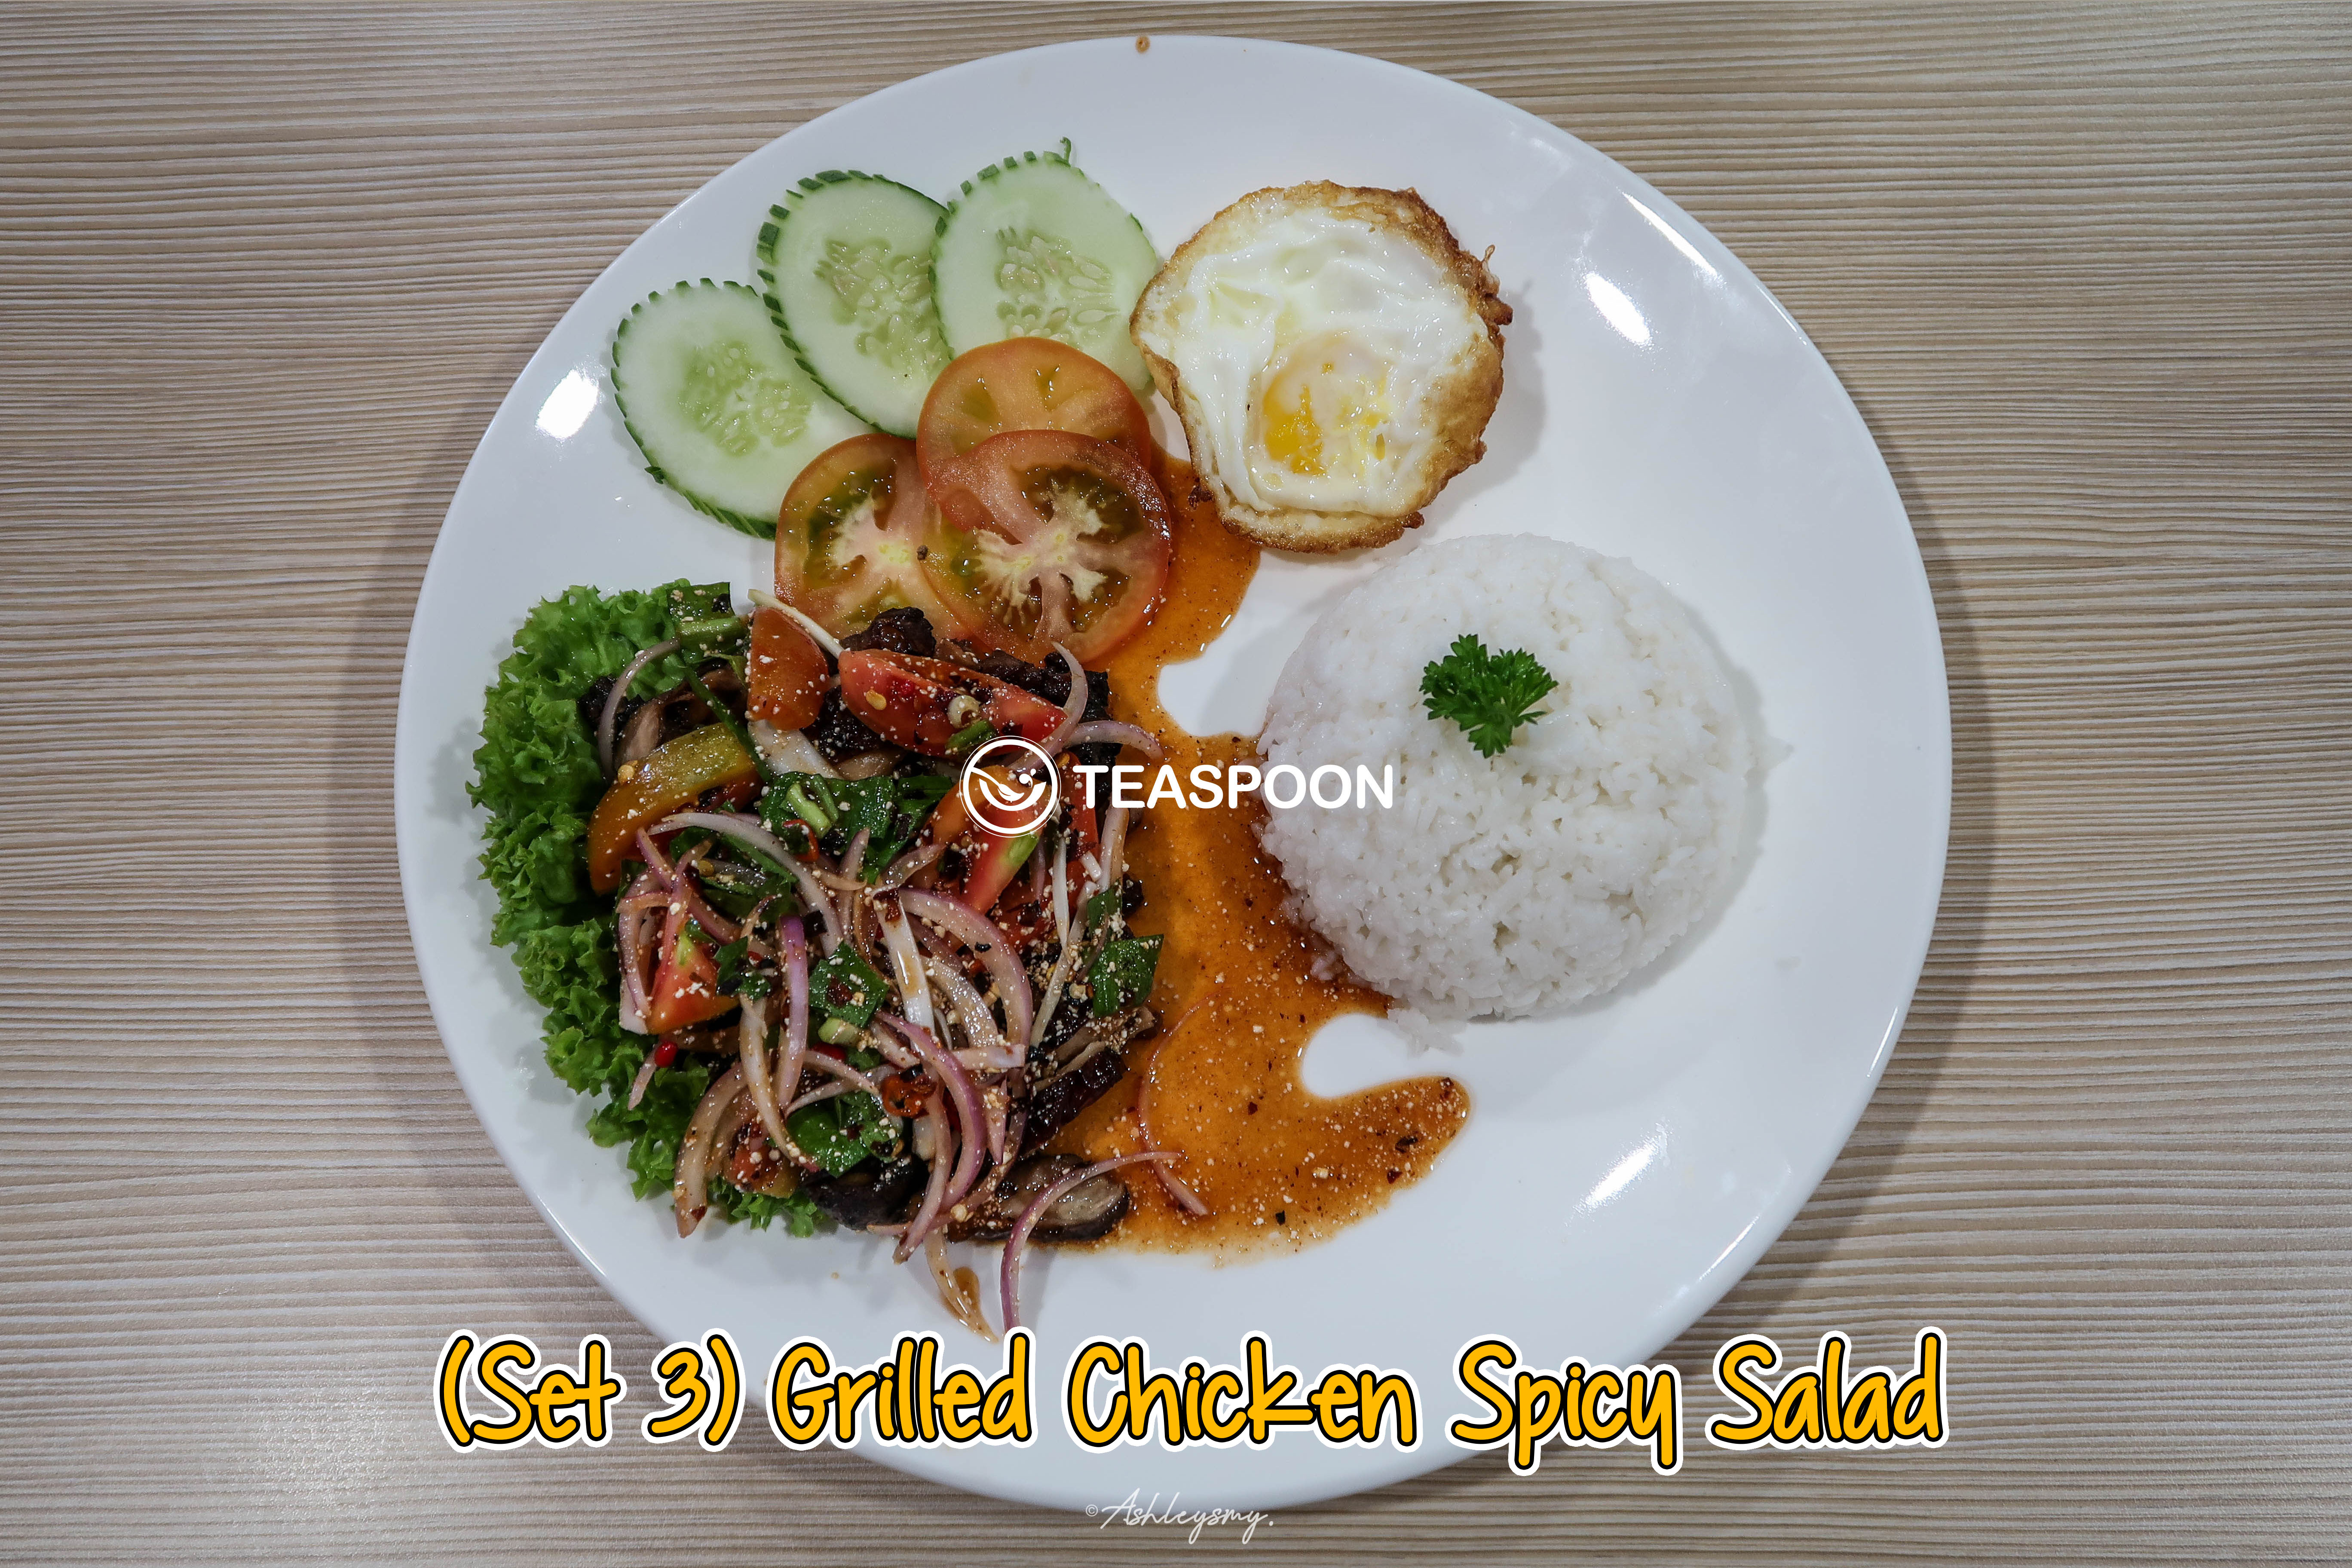 Grilled Chicken Spicy Salad (1) copy